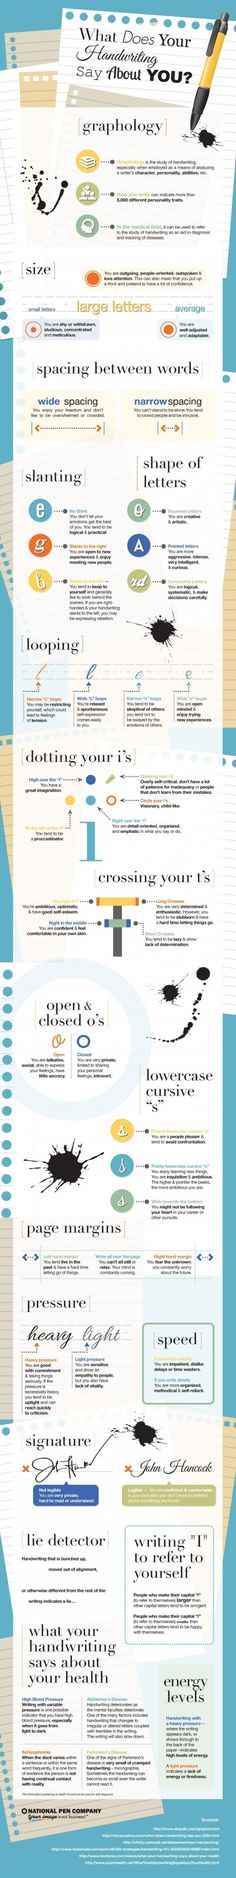 what does your #handwriting say about you #infographic